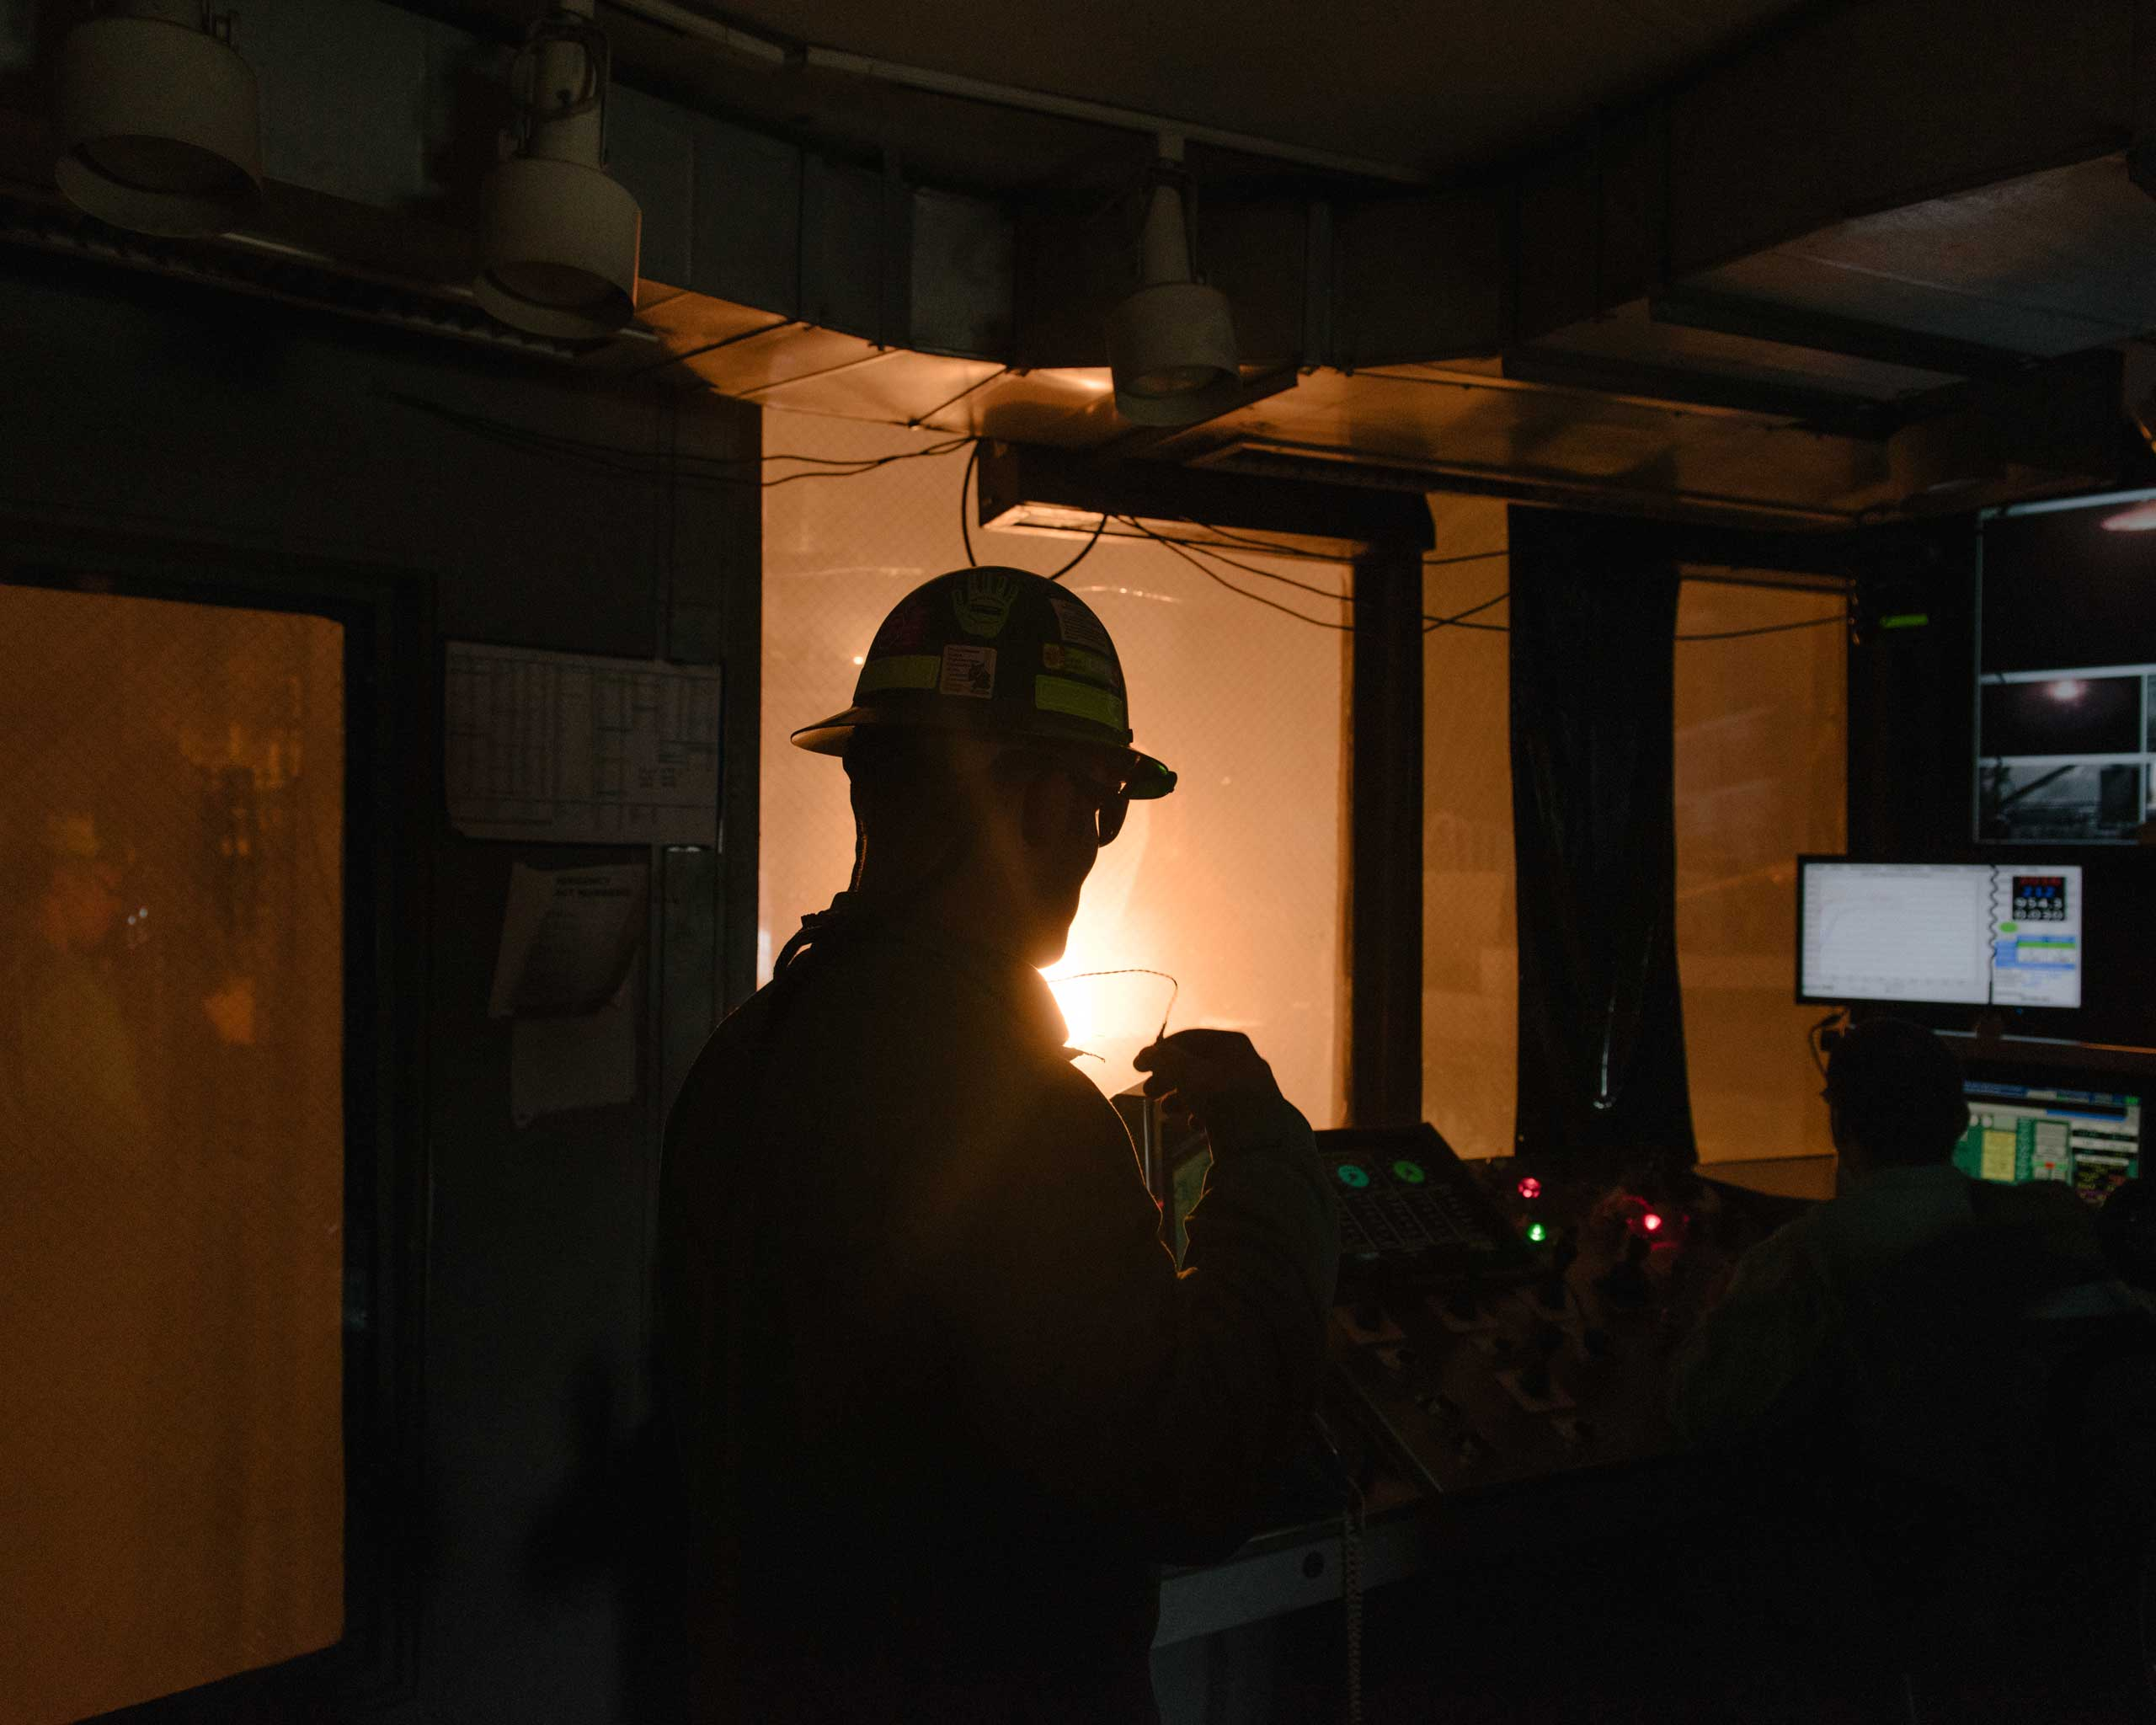 A Nucor steelworker monitors the furnace from inside a control room in the mill's melt shop, where scrap is liquified, Crawfordsville, Ind. on Aug. 25, 2014.